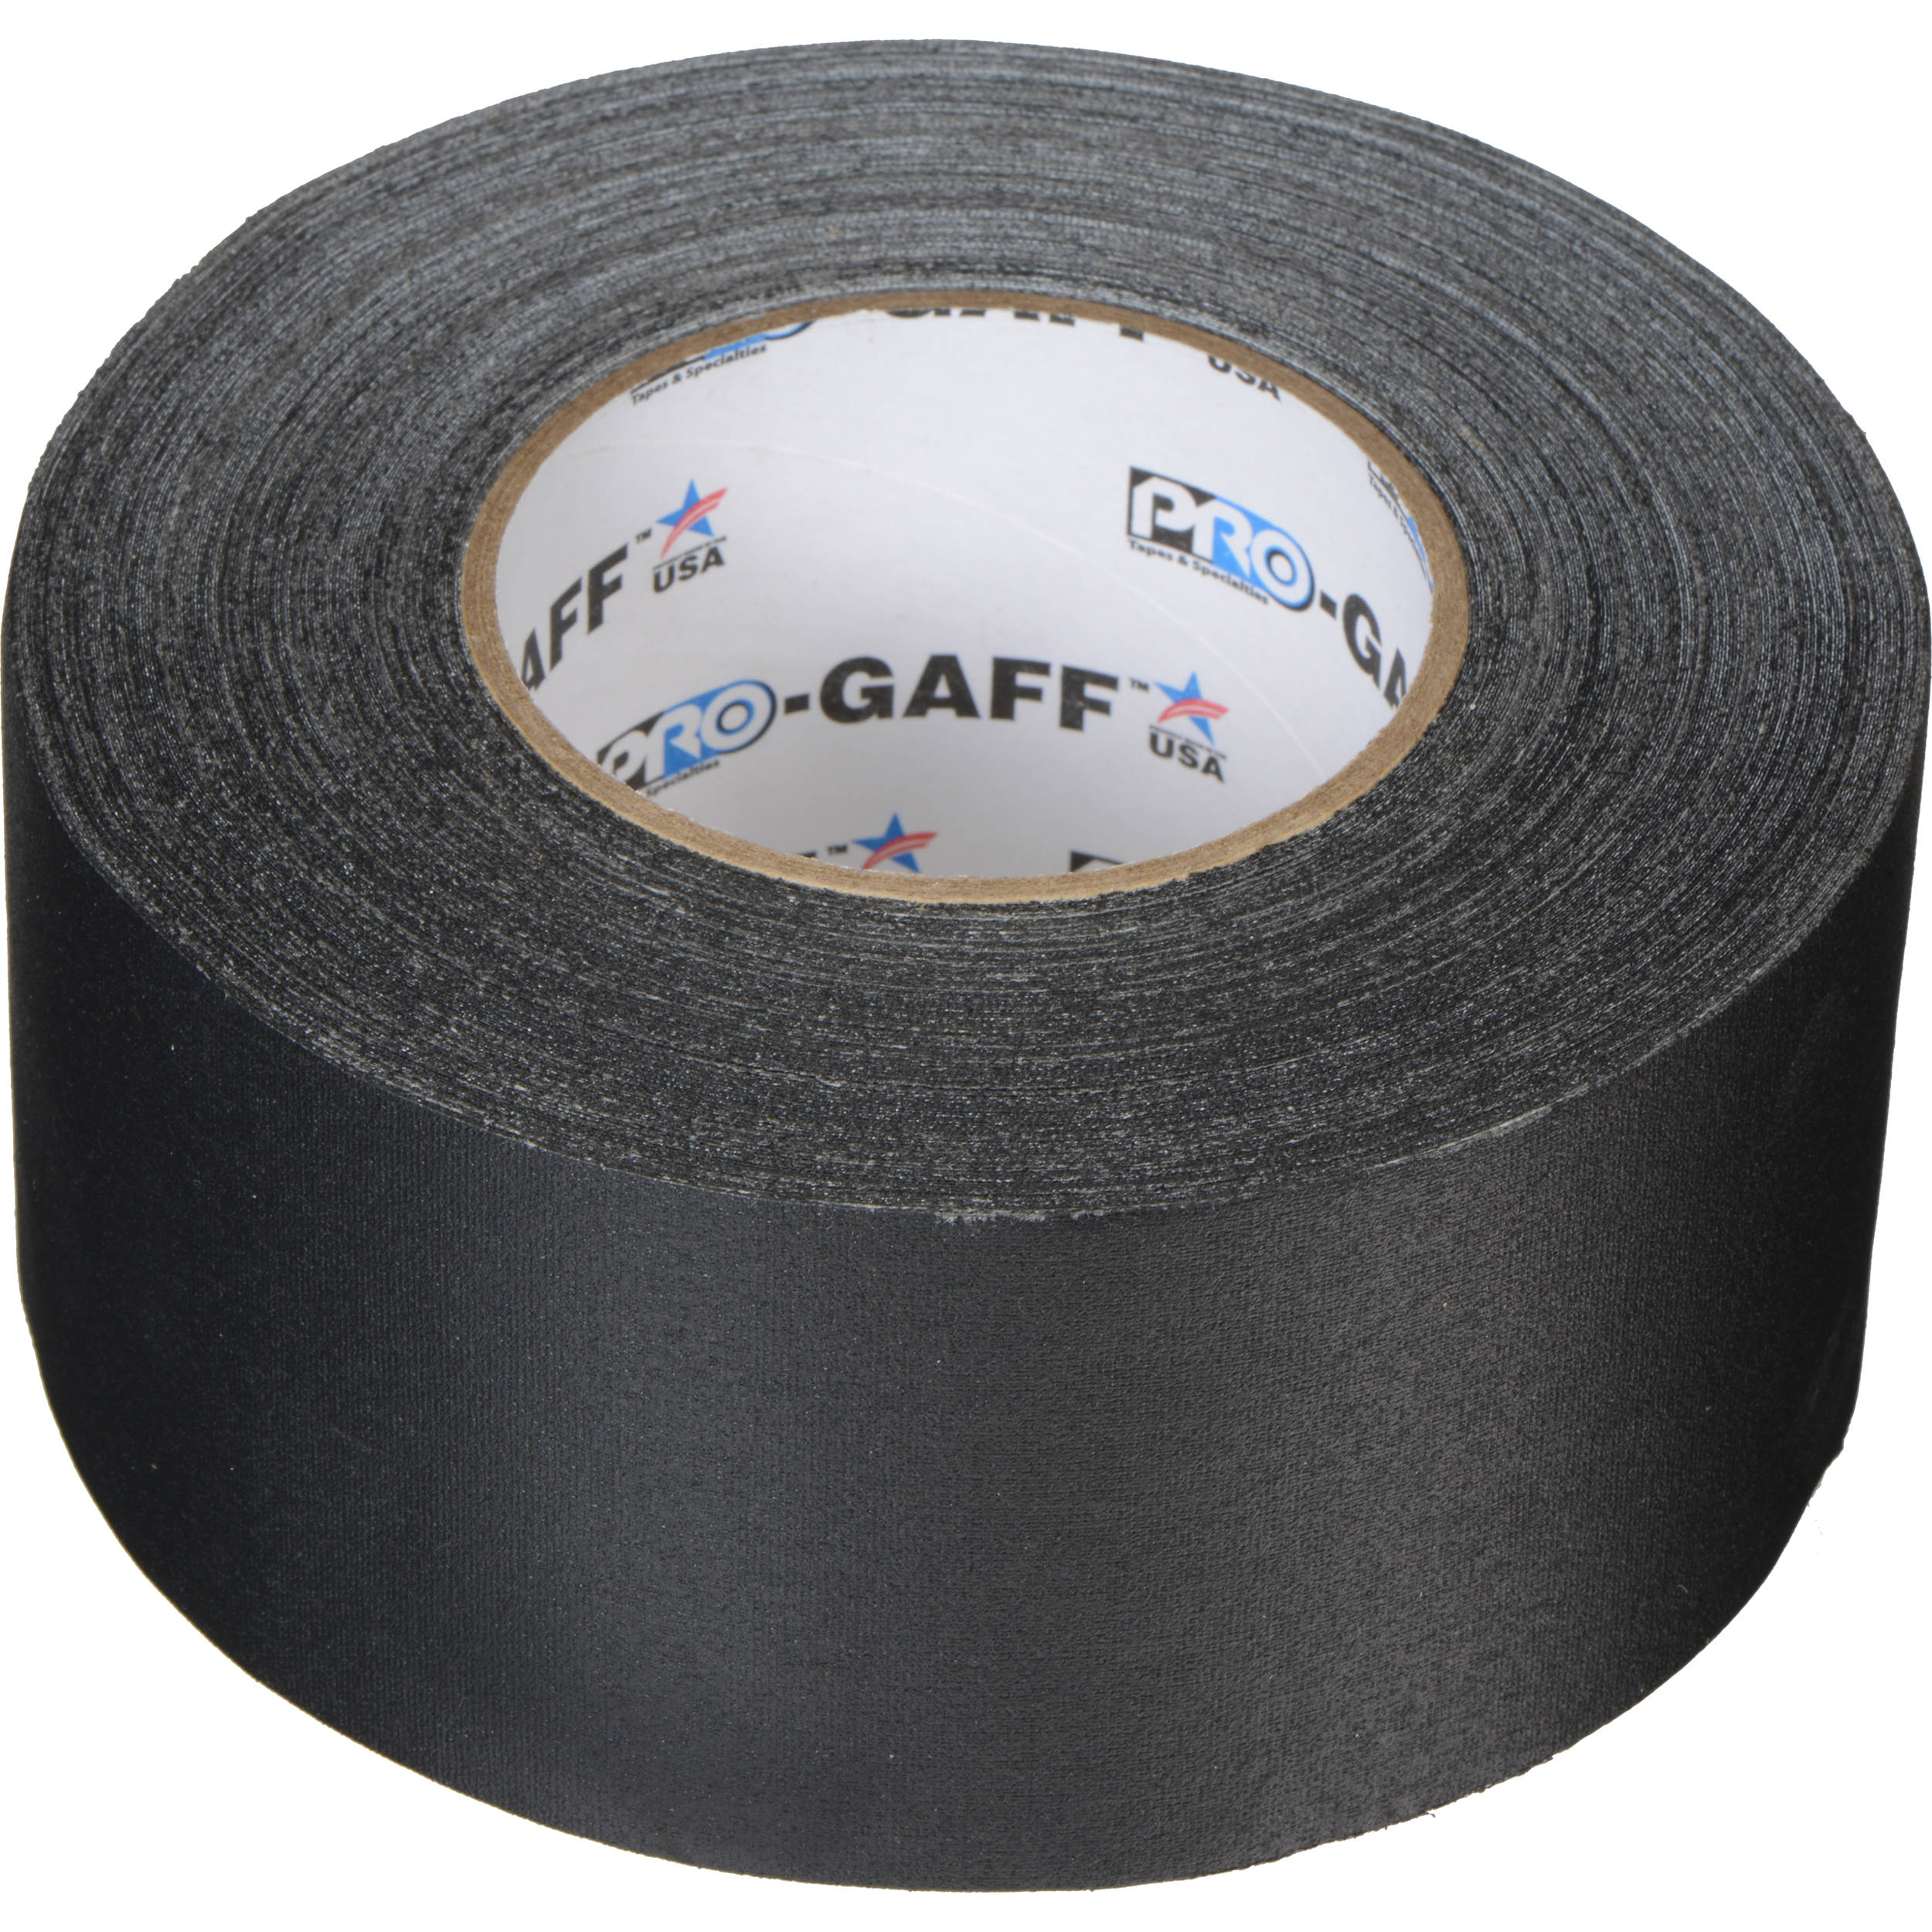 General_Brand_001UPCG355MBLA_Pro_Gaffer_Cloth_Tape_812219